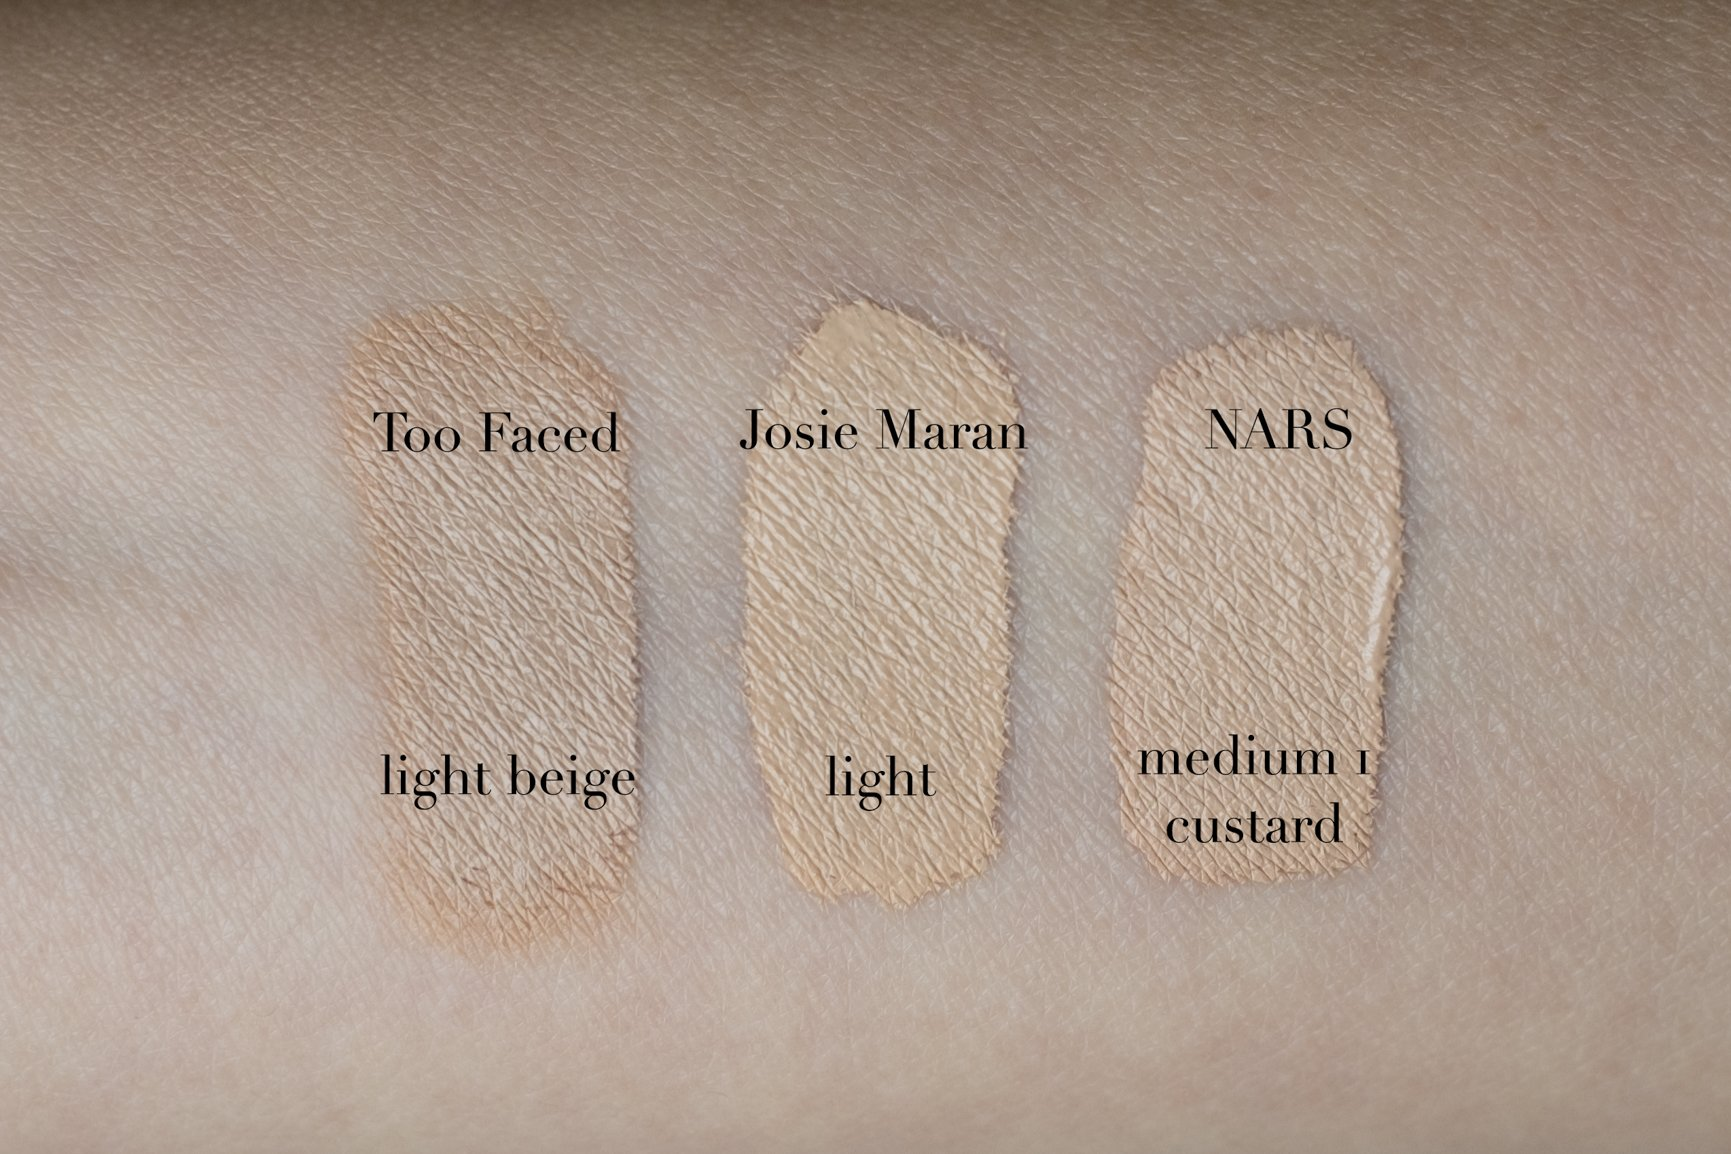 sunkissedblush-vibrance-josie-maran-argan-oil-full-coverage-concealer-fluid-swatch (15 of 15)